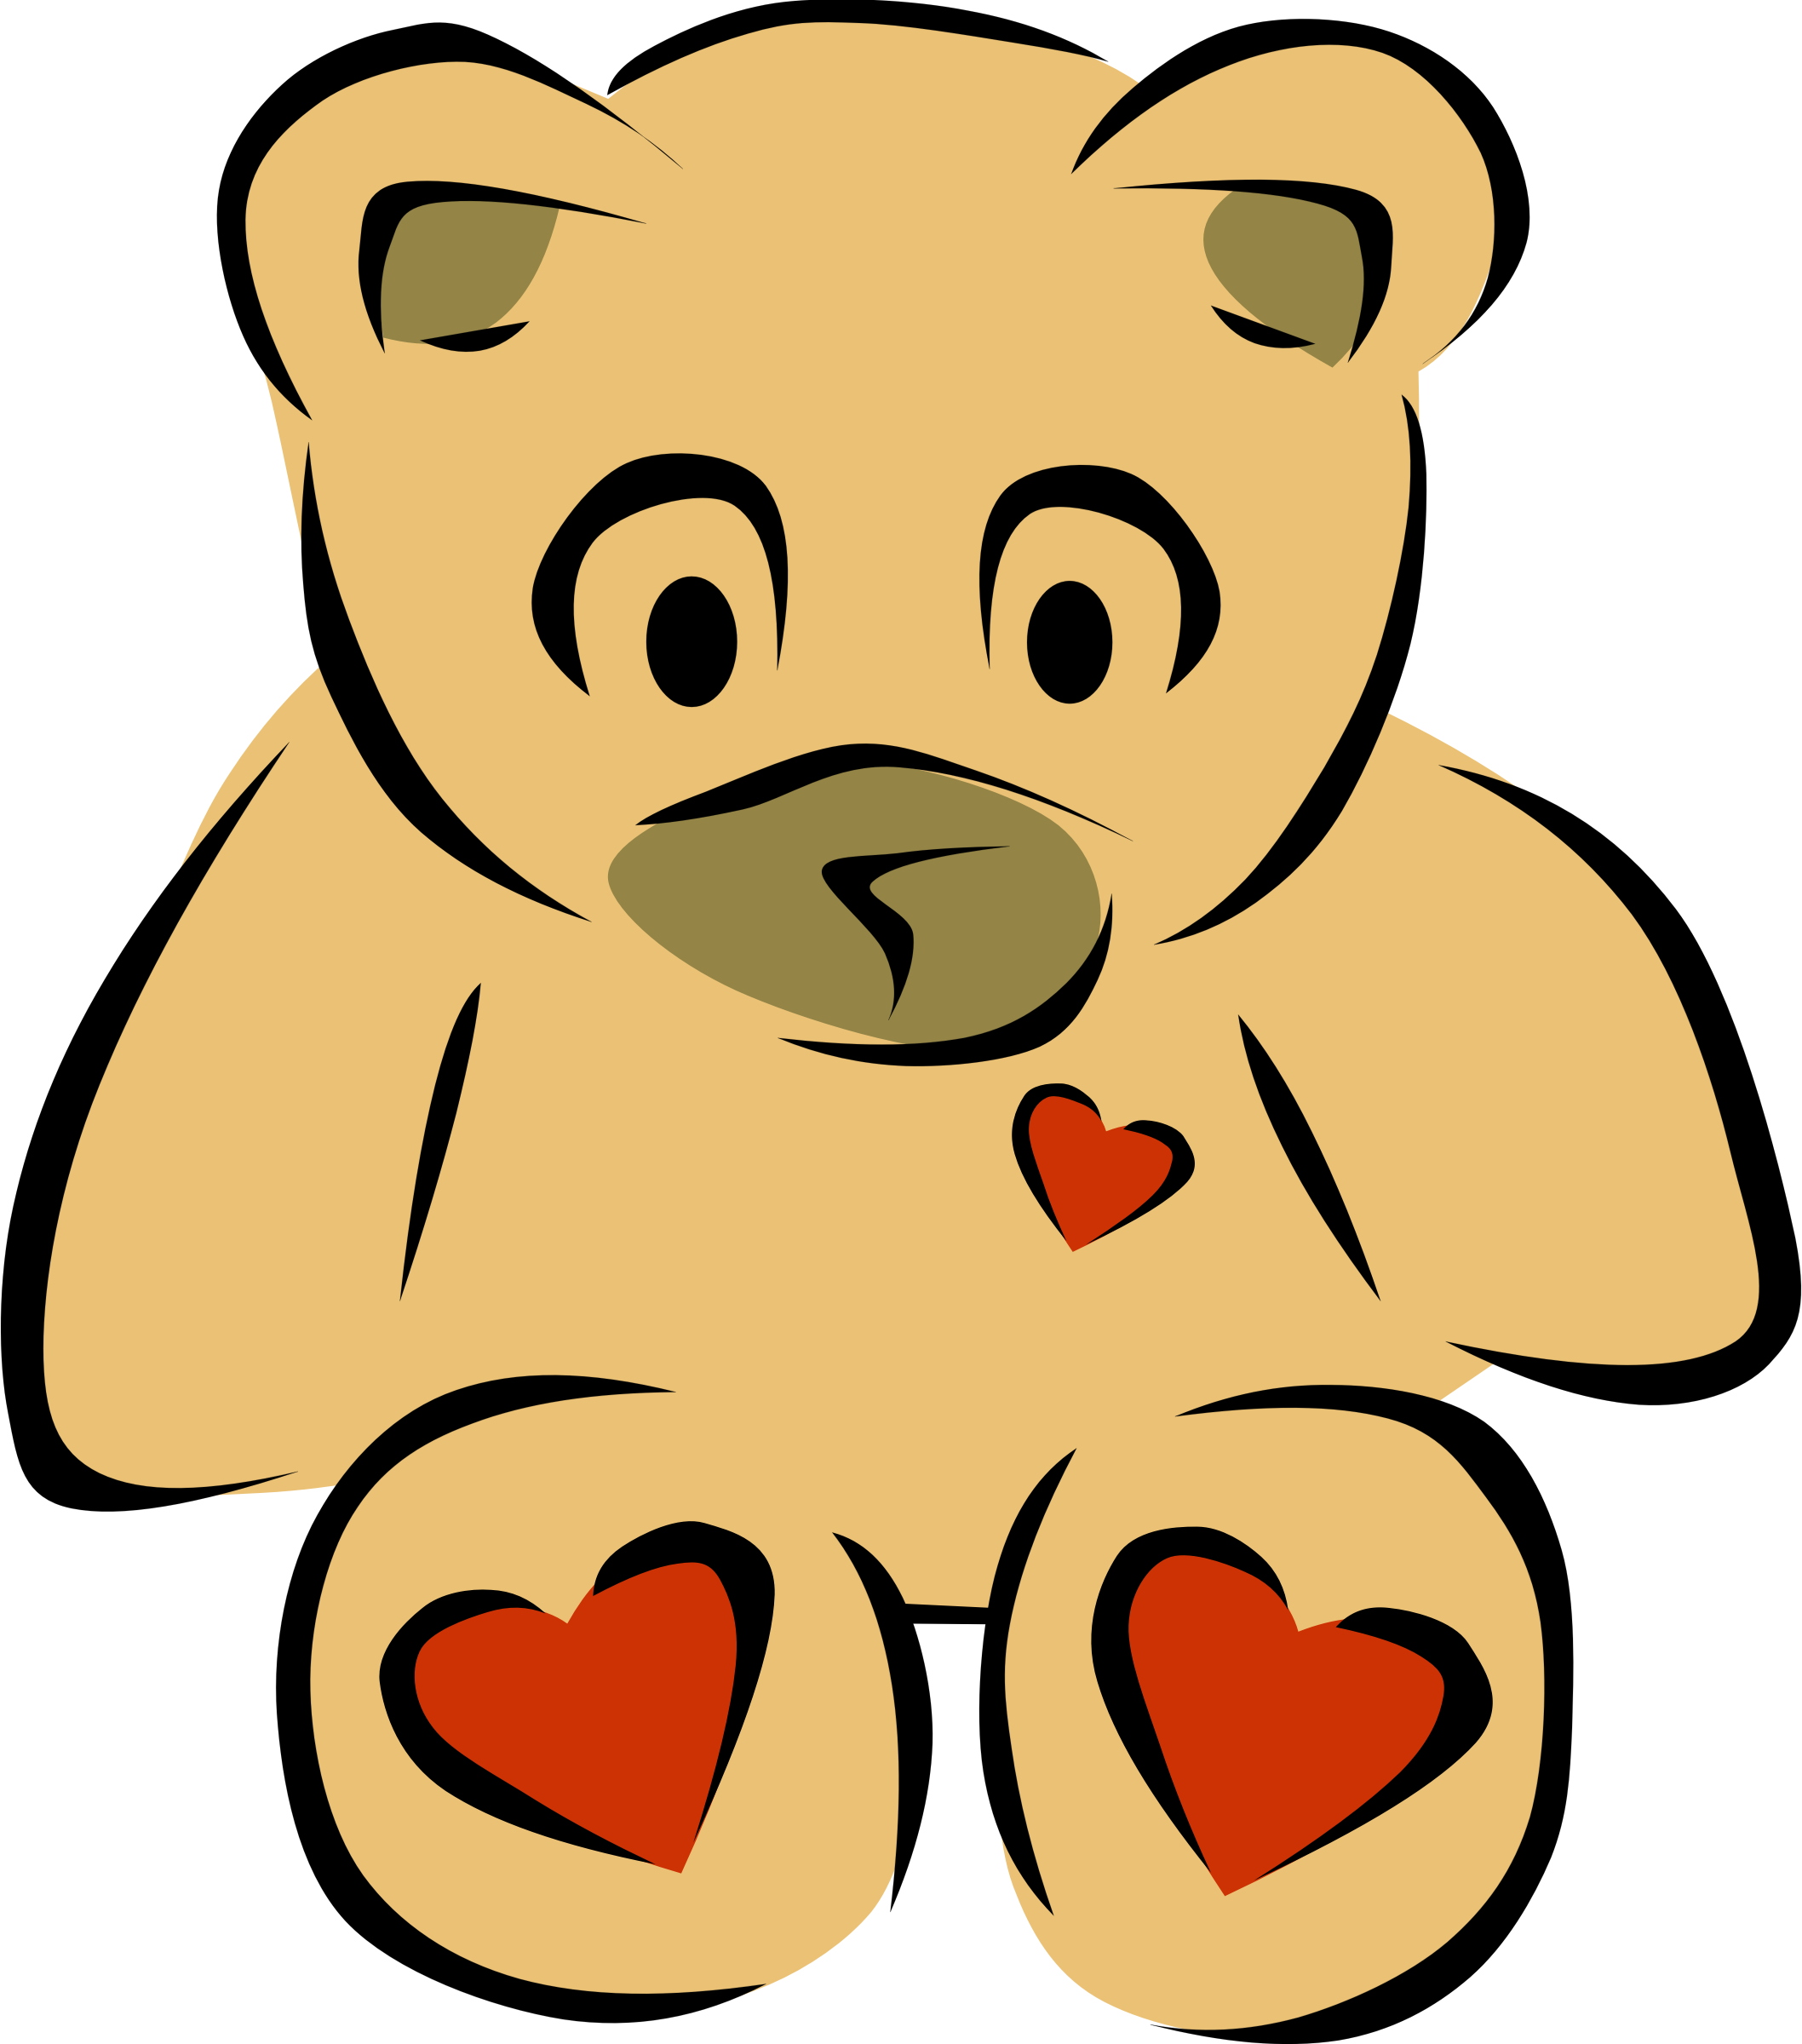 Teddy Bear with hearts by Gerald_G